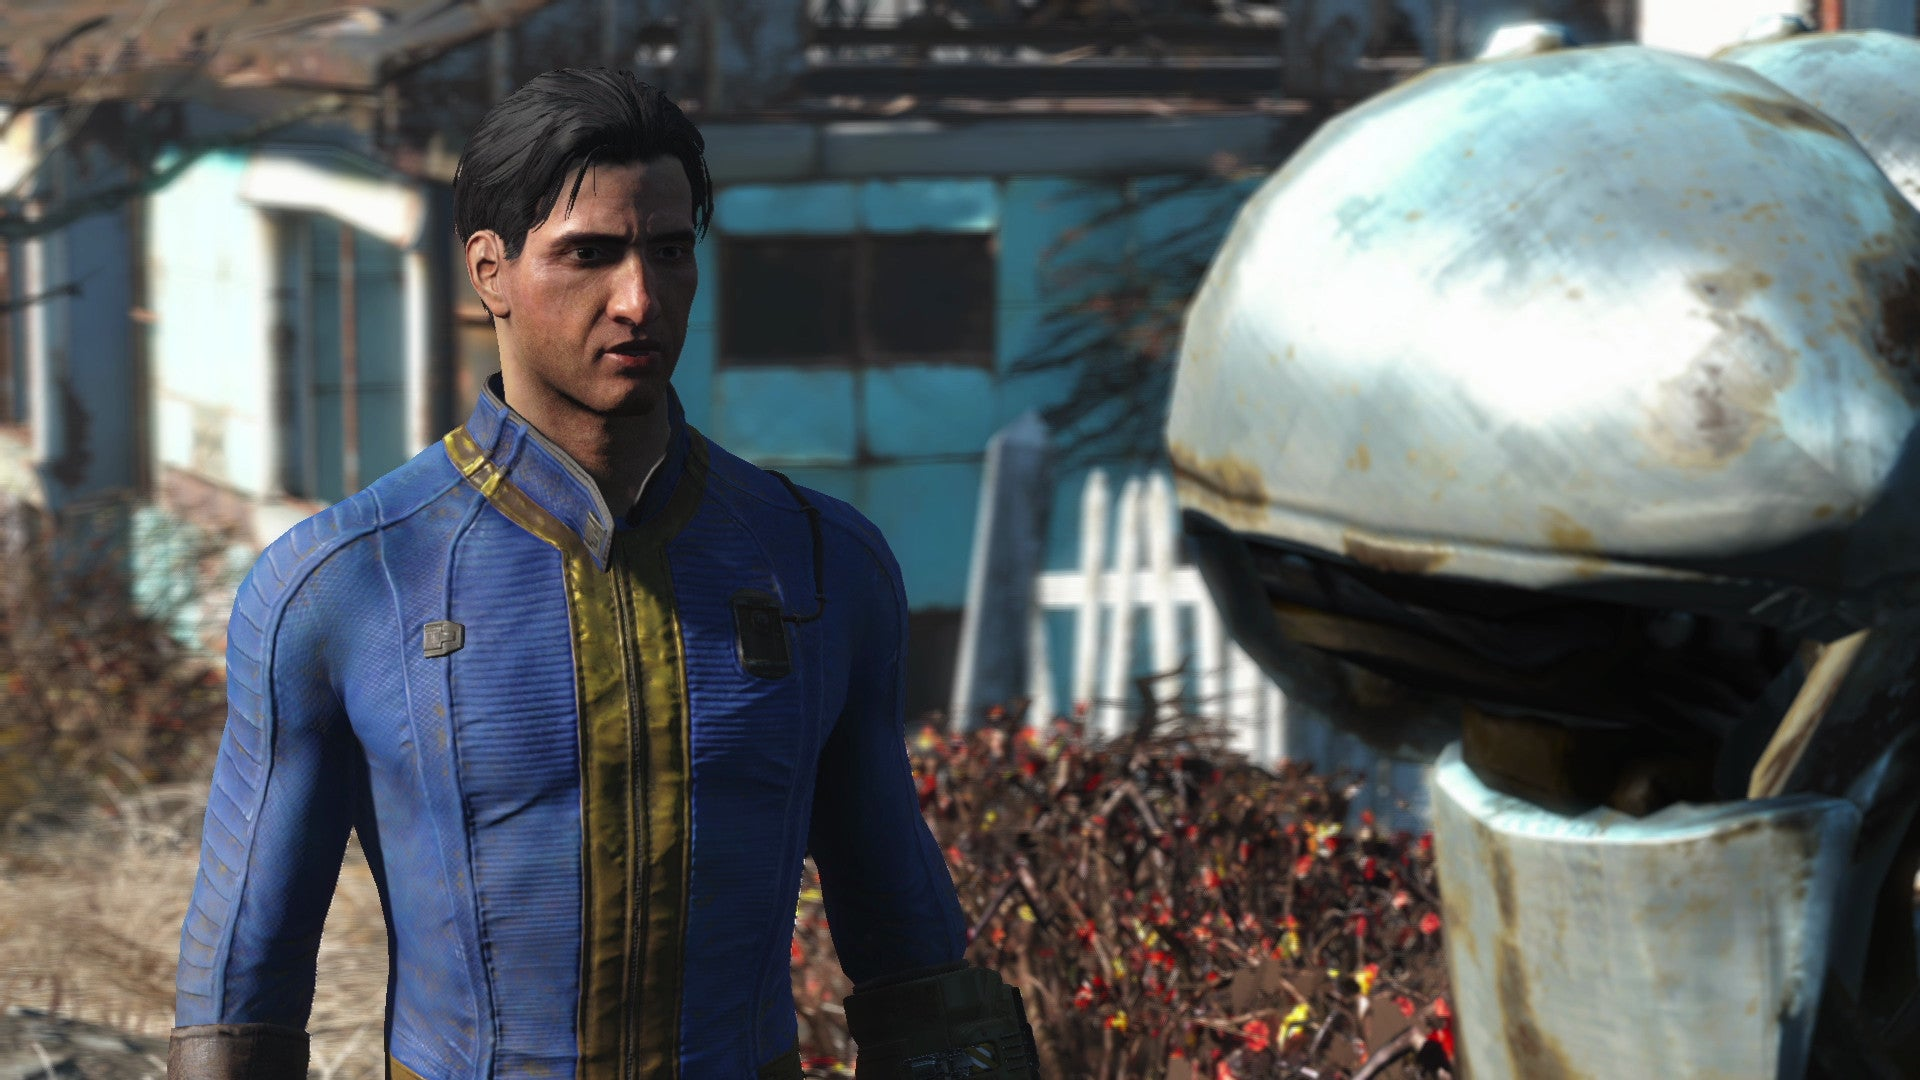 The Controversy Over Bethesda's 'Game Engine' Is Misguided